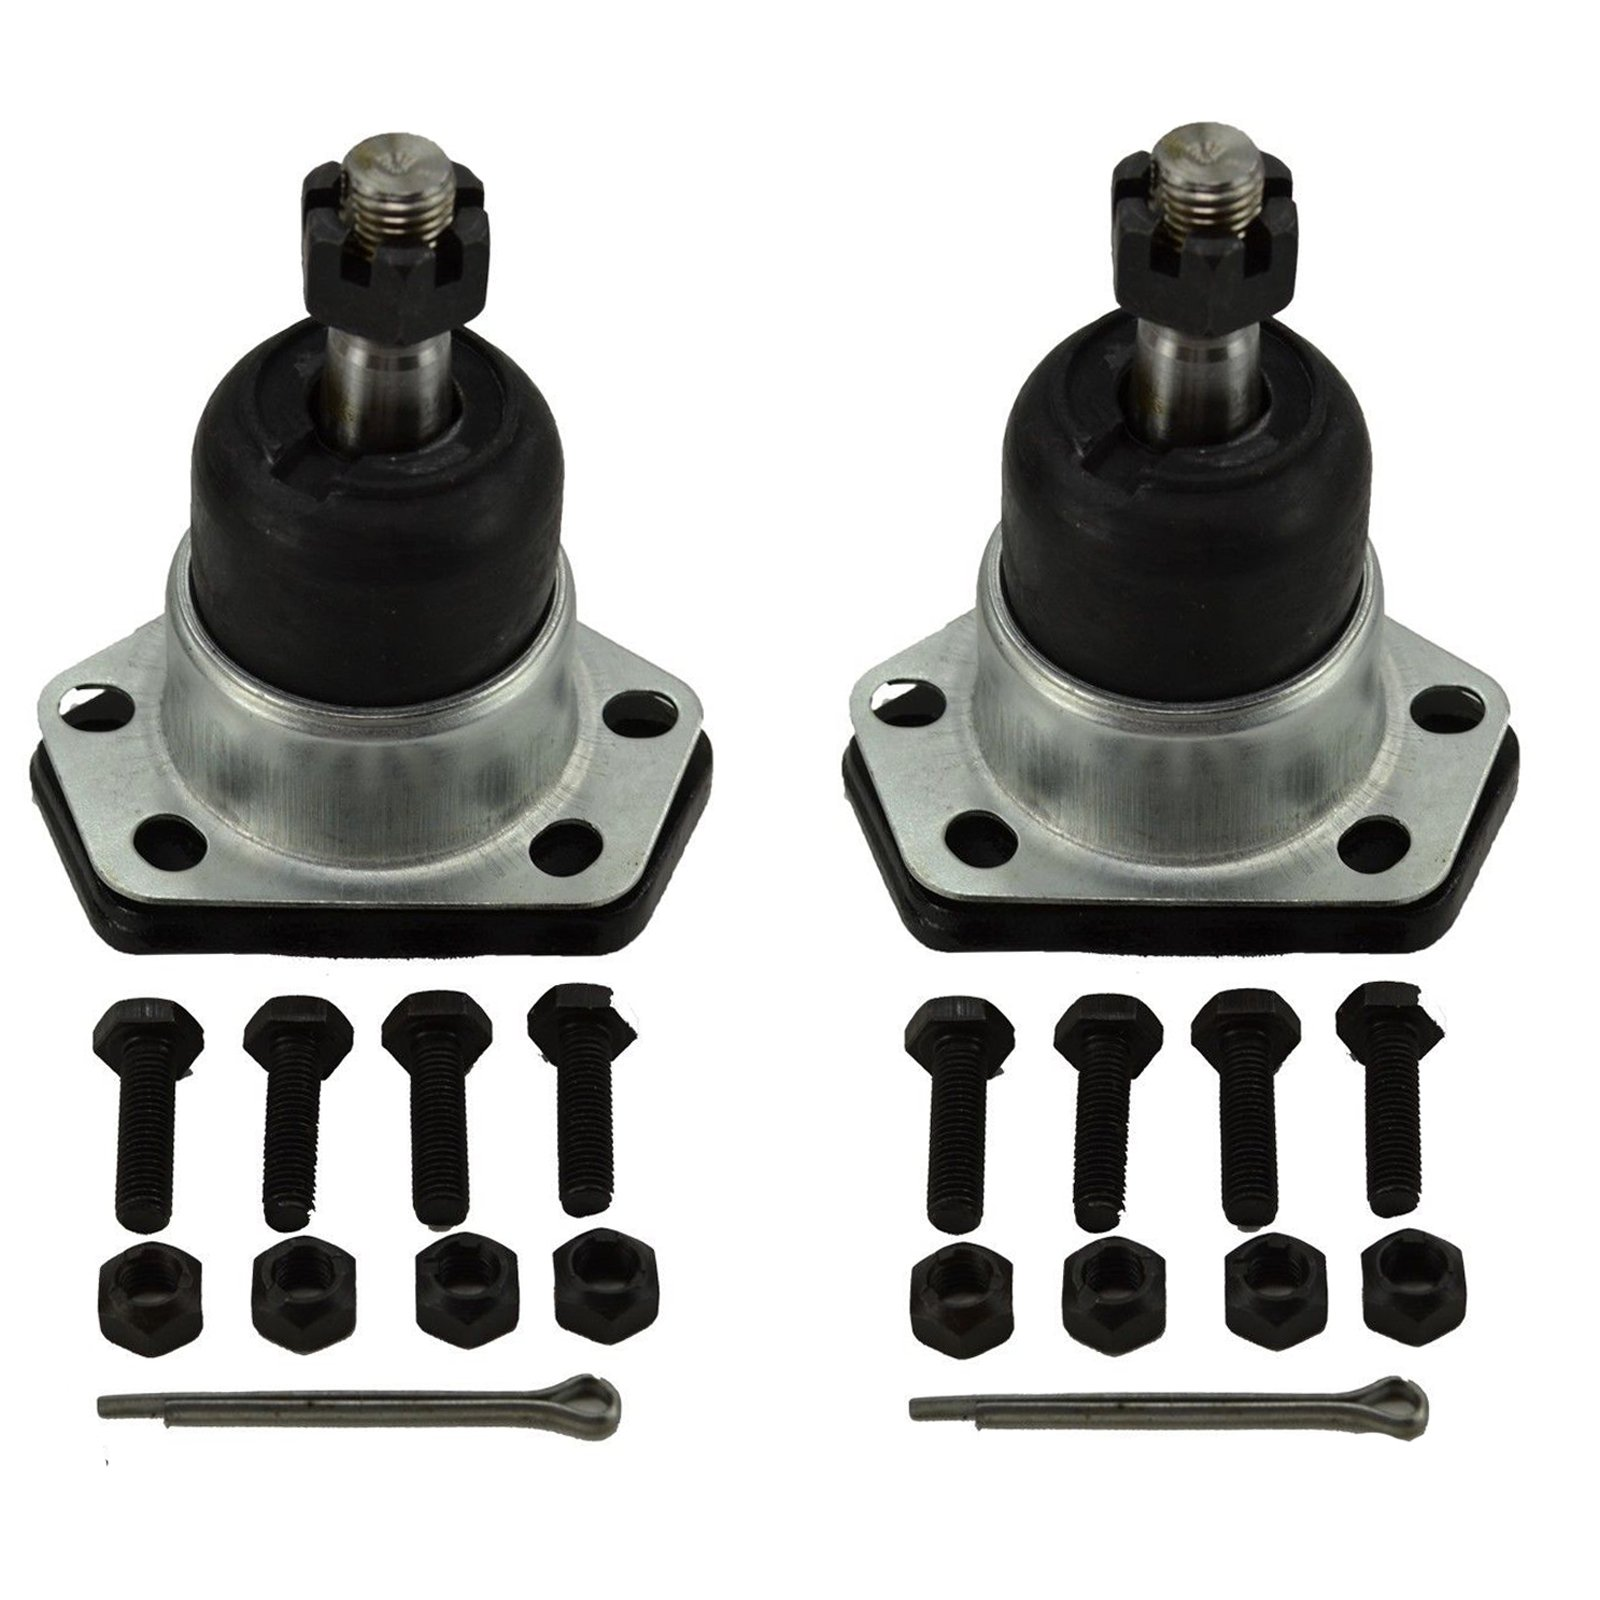 Detroit Axle - Both (2) Brand New Driver & Passenger Side Front Upper Ball Joint 10-Year Warranty